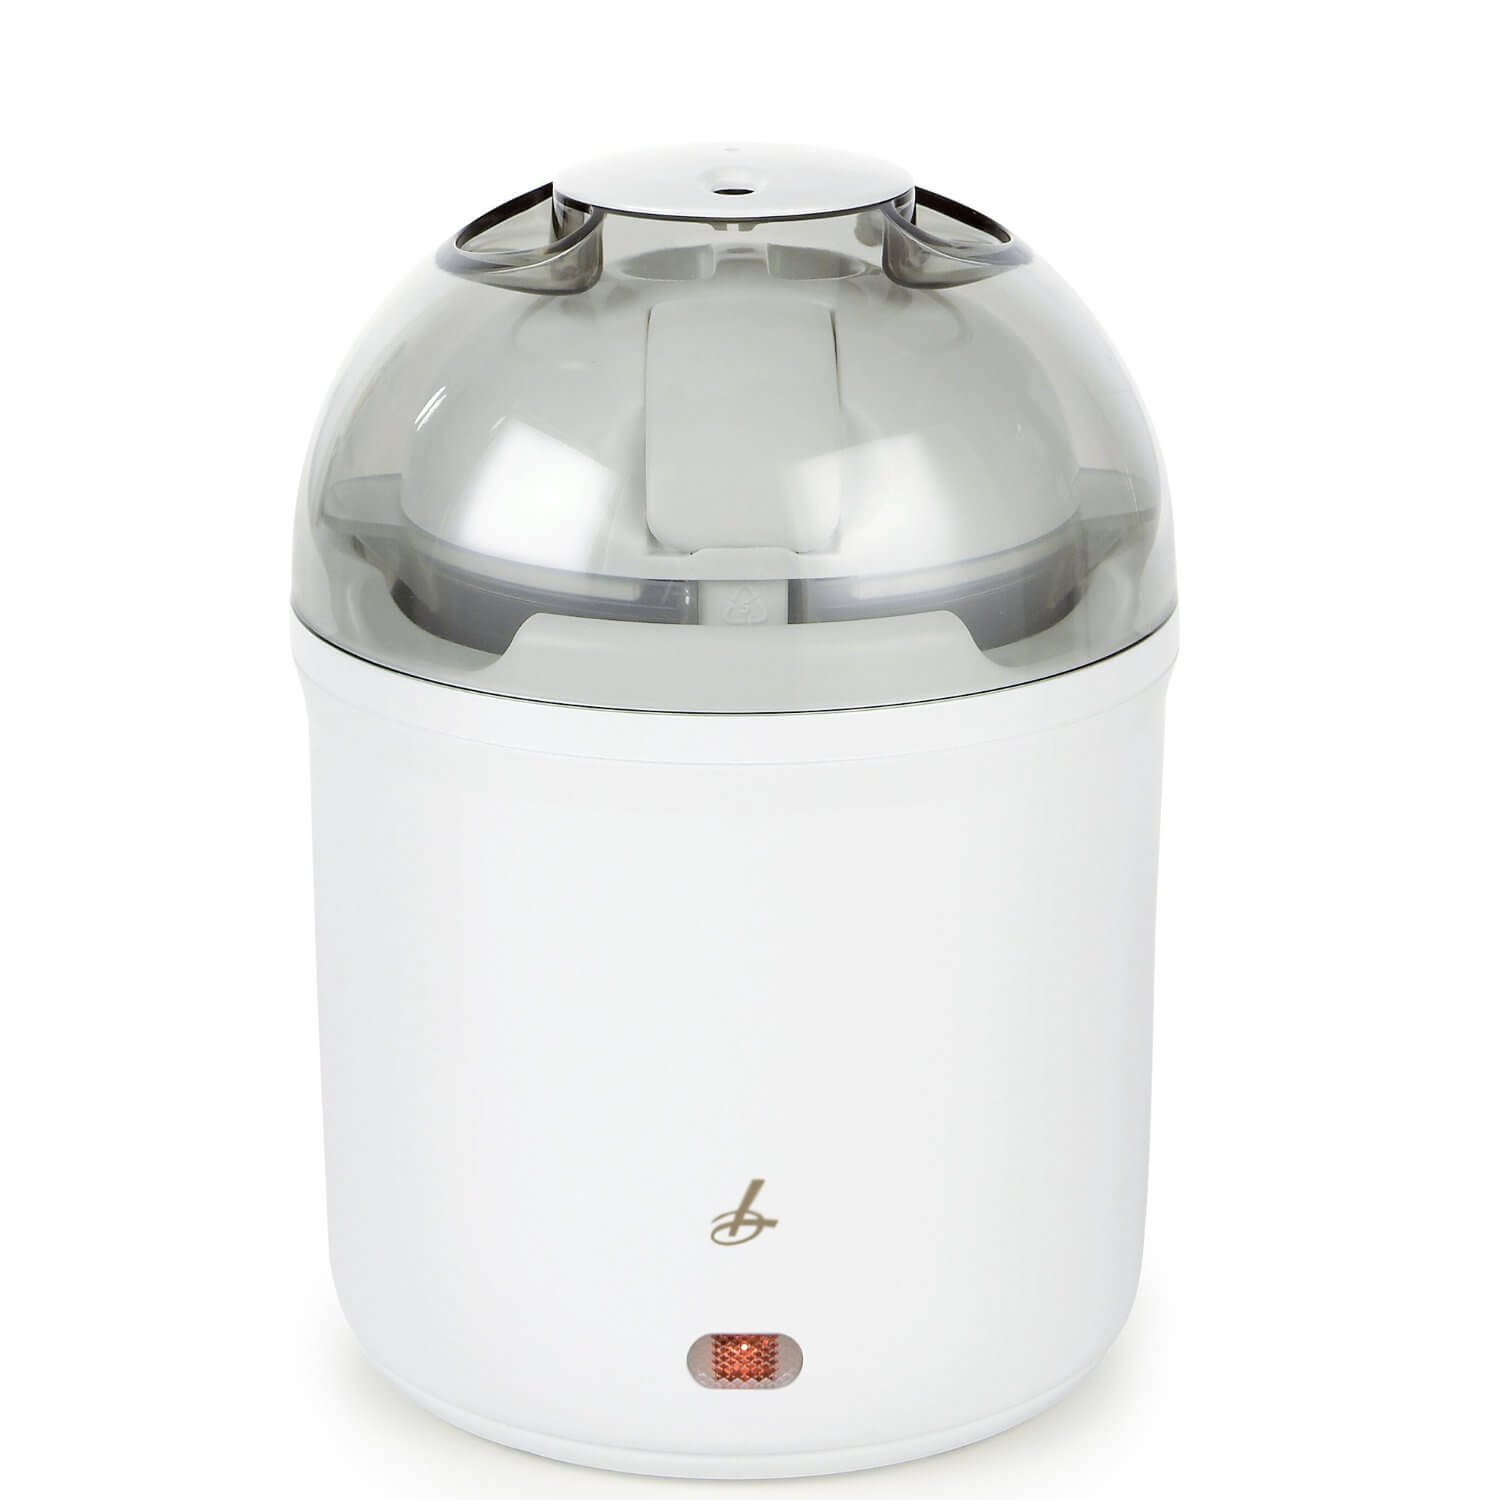 Lakeland My Kitchen Electric Yoghurt Maker